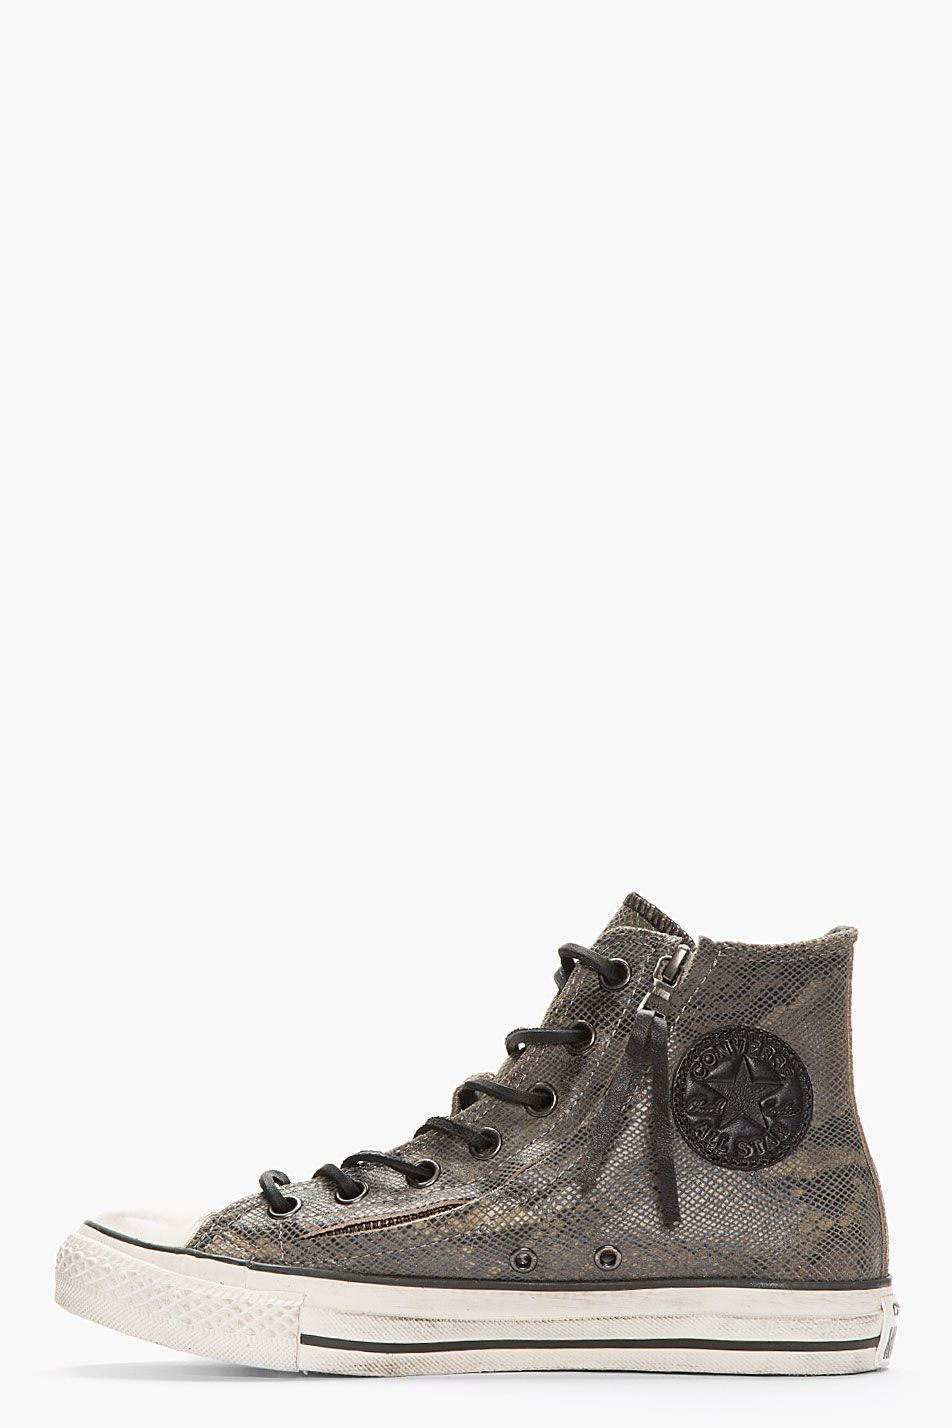 7117a51cfac CONVERSE BY JOHN VARVATOS Dark Grey Snakeskin Suede Zippered Converse X All  Star High-Top Sneakers